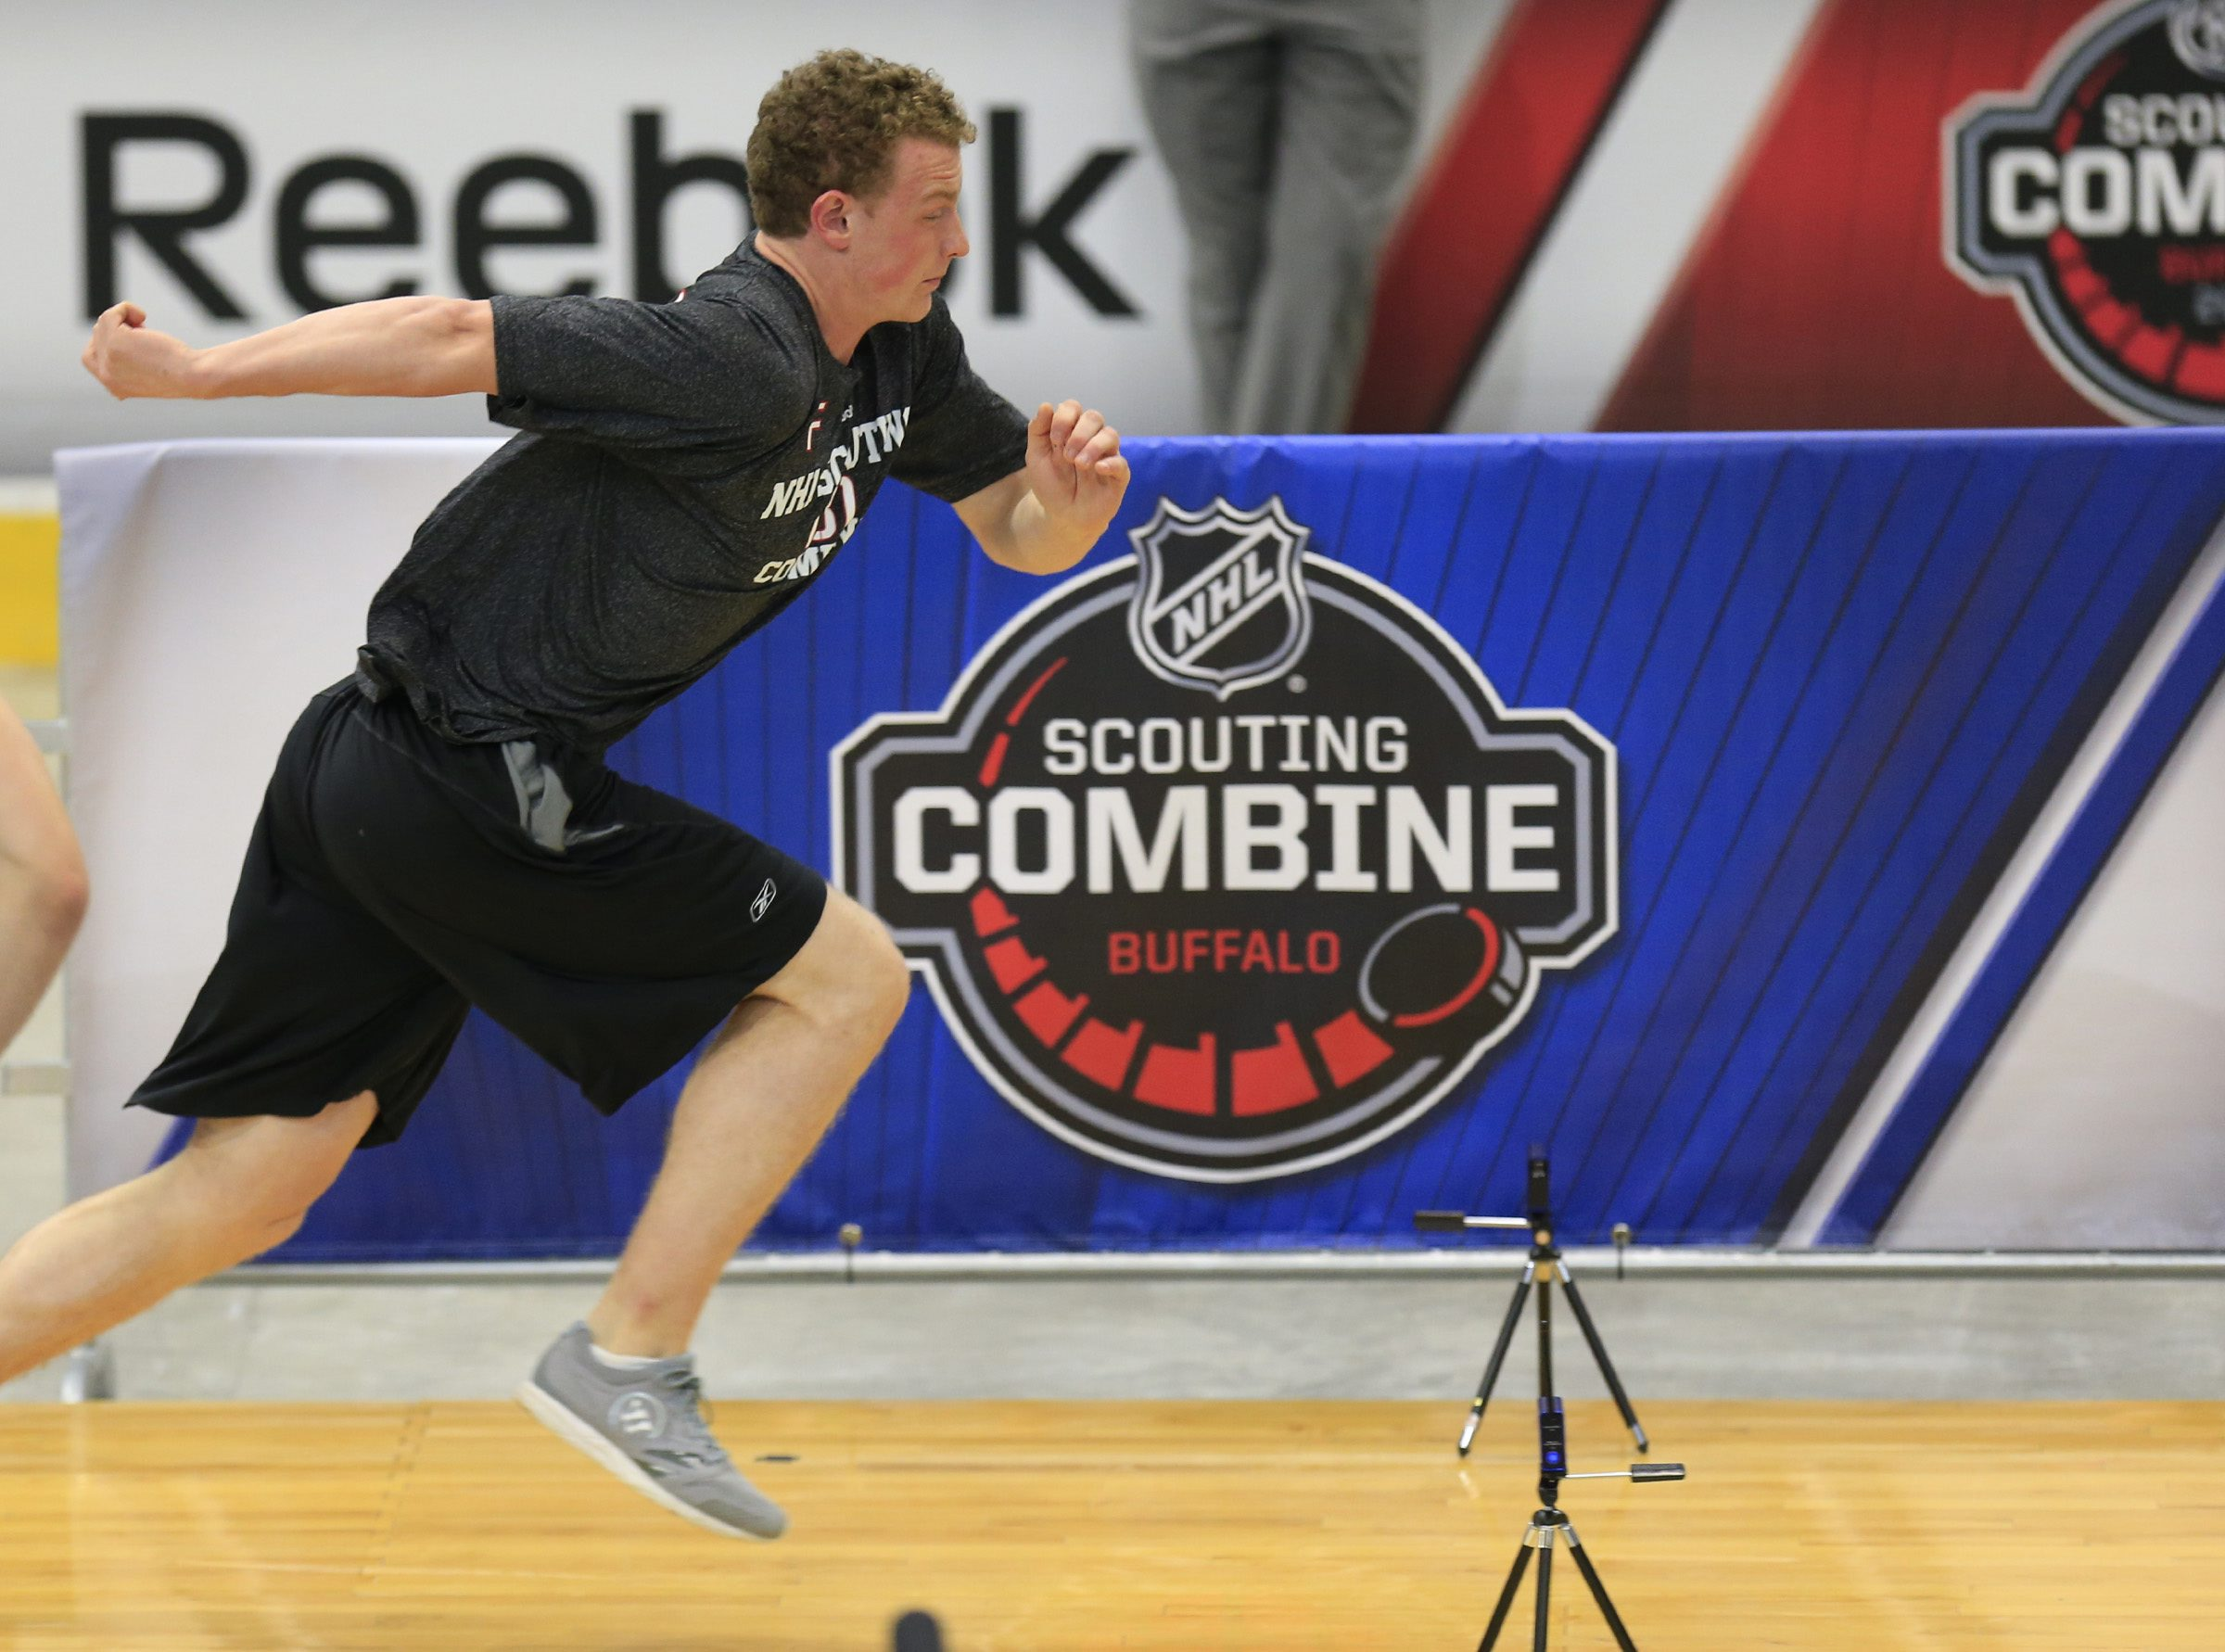 Jack Eichel put up some good scores during his tests at the NHL Scouting Combine on Saturday.